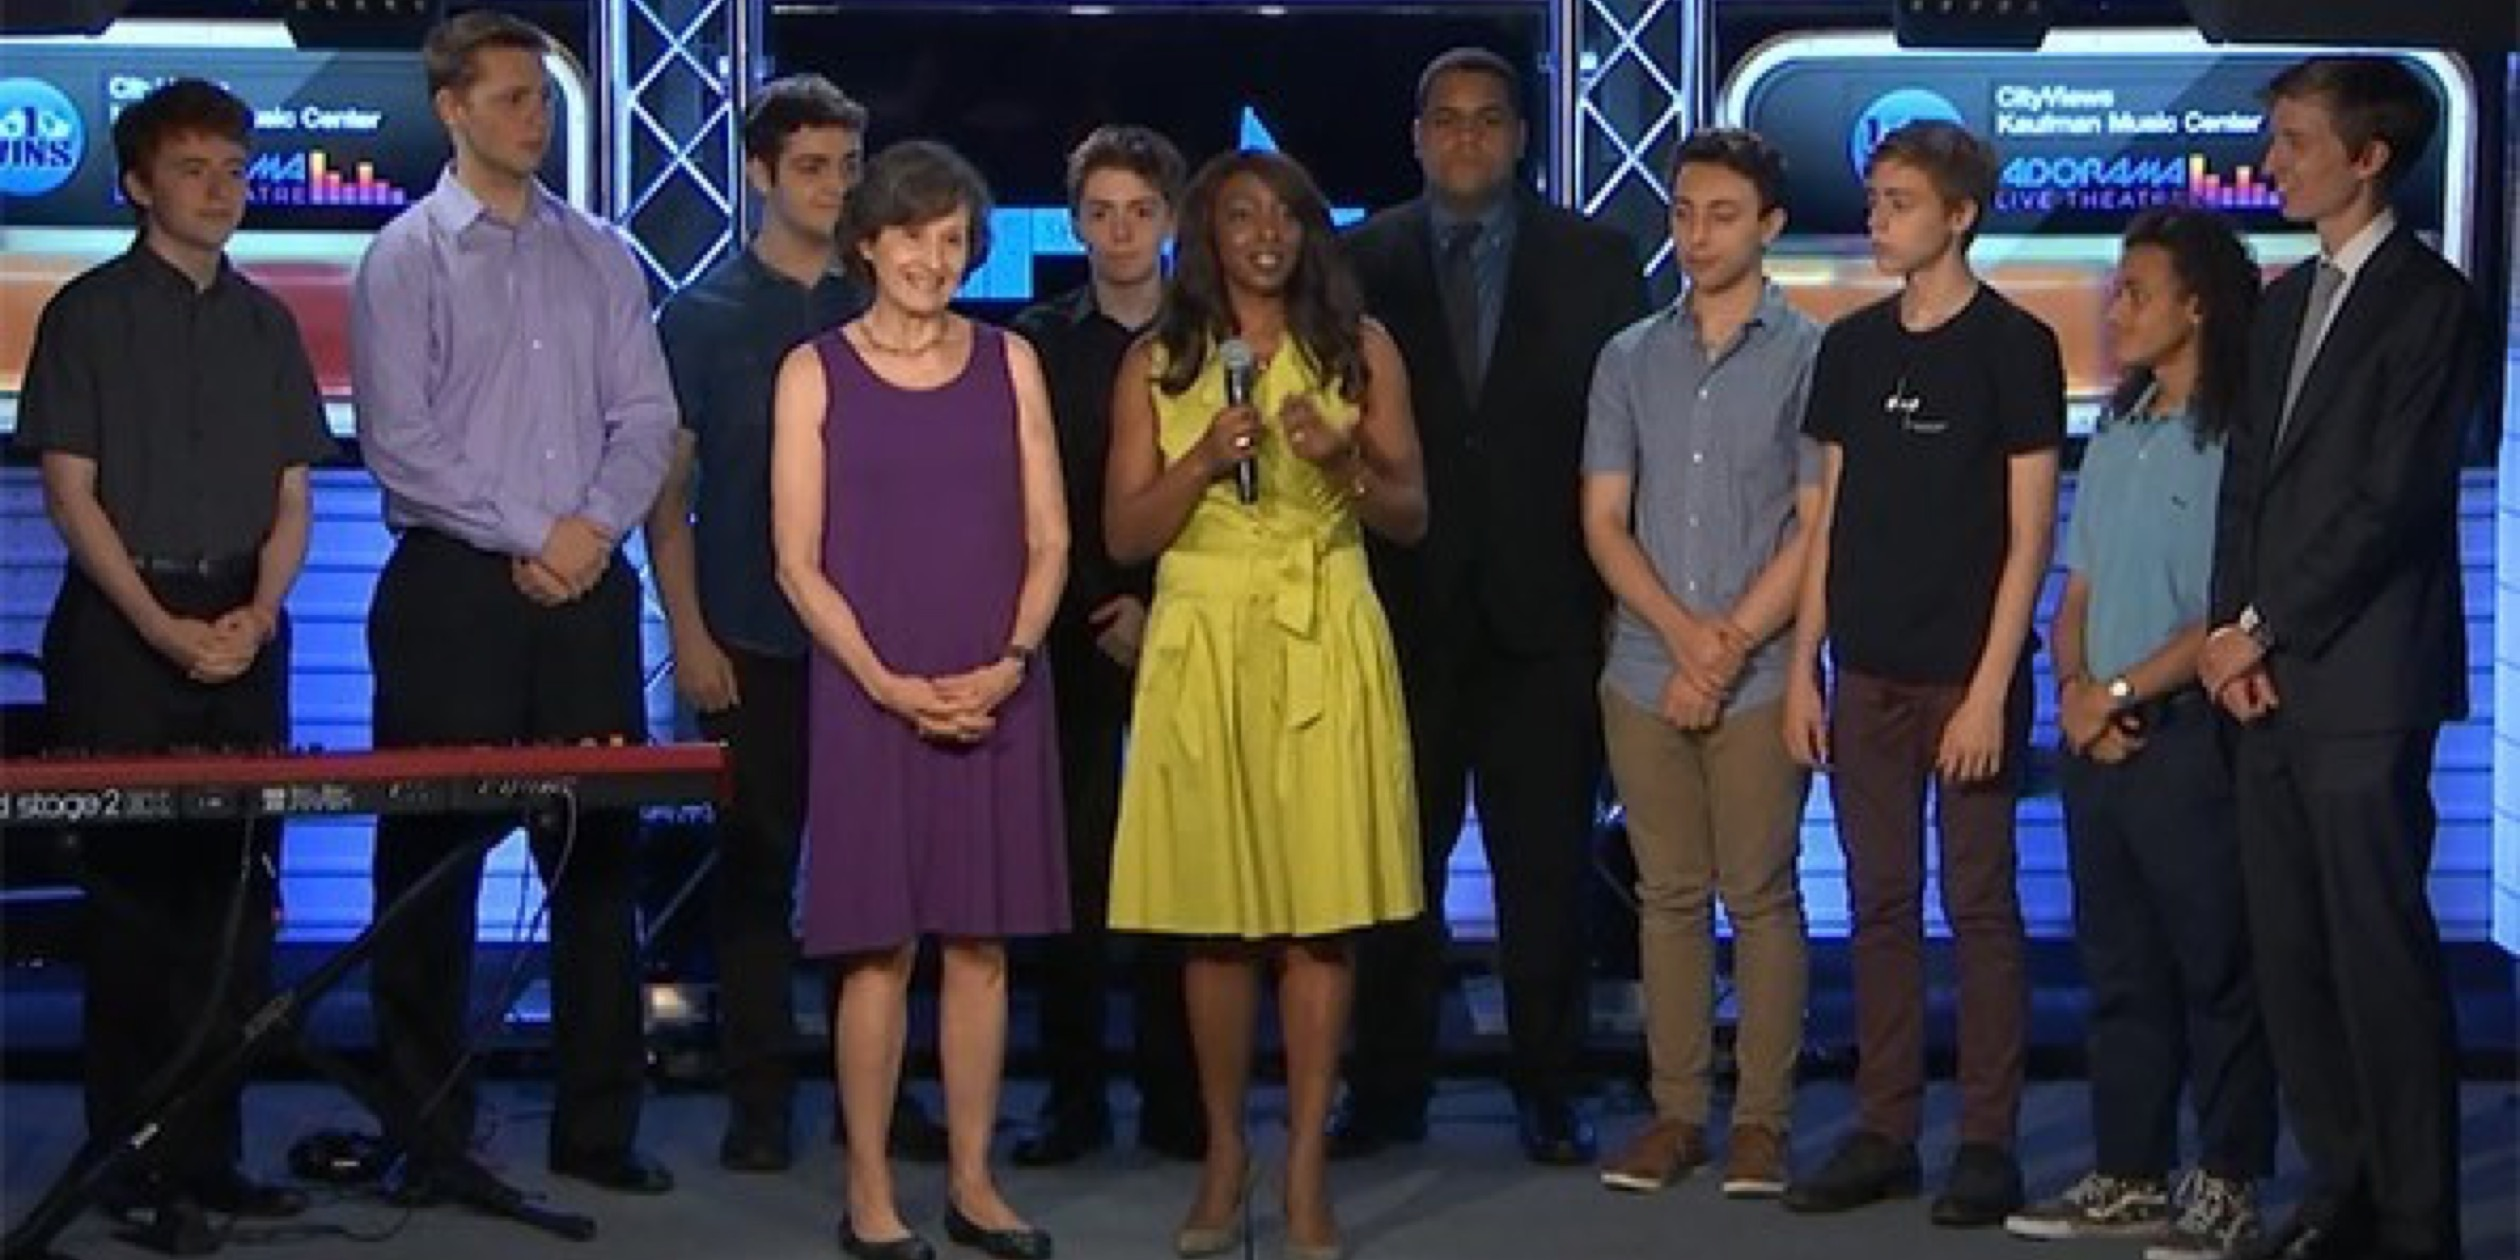 Watch SMS High School Students on CBS's CityViews!